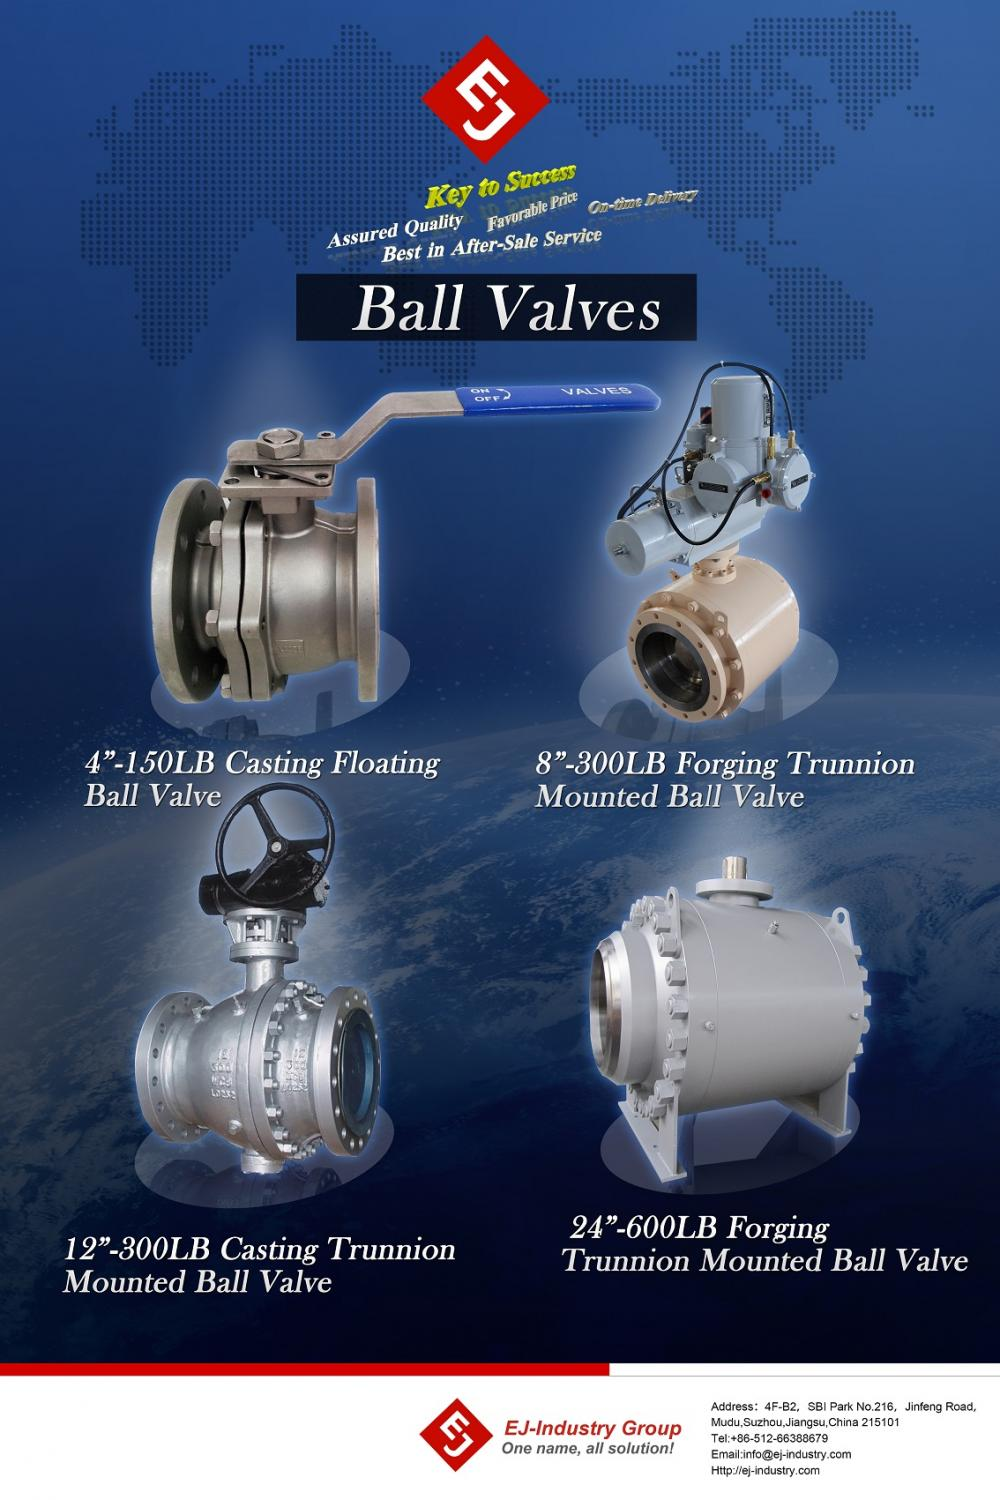 Ball vavle products